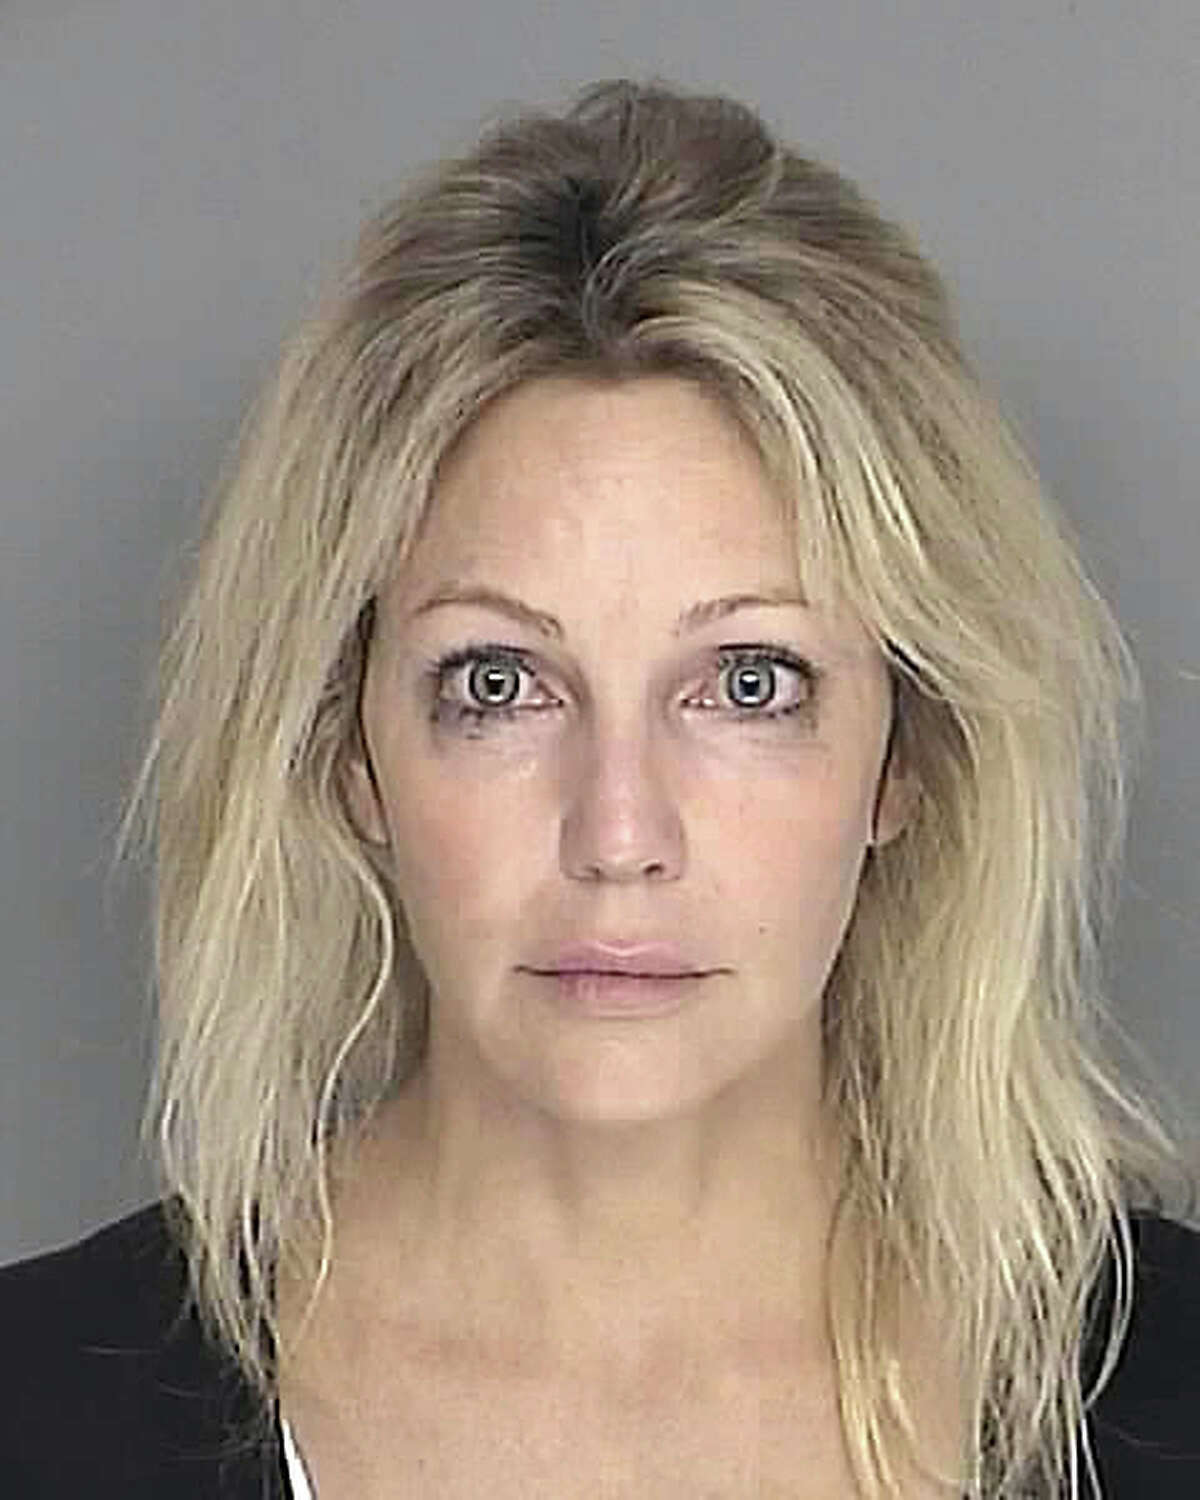 In this handout image provided by the Santa Barbara County Sheriff's Dept., actress Heather Locklear poses for a mugshot September 28, 2008 in Santa Barbara, California. Locklear was arrested on suspicion of driving under the influence of a controlled substance in the Santa Barbara area, authorities said Sunday. The case was dismissed in 2008.